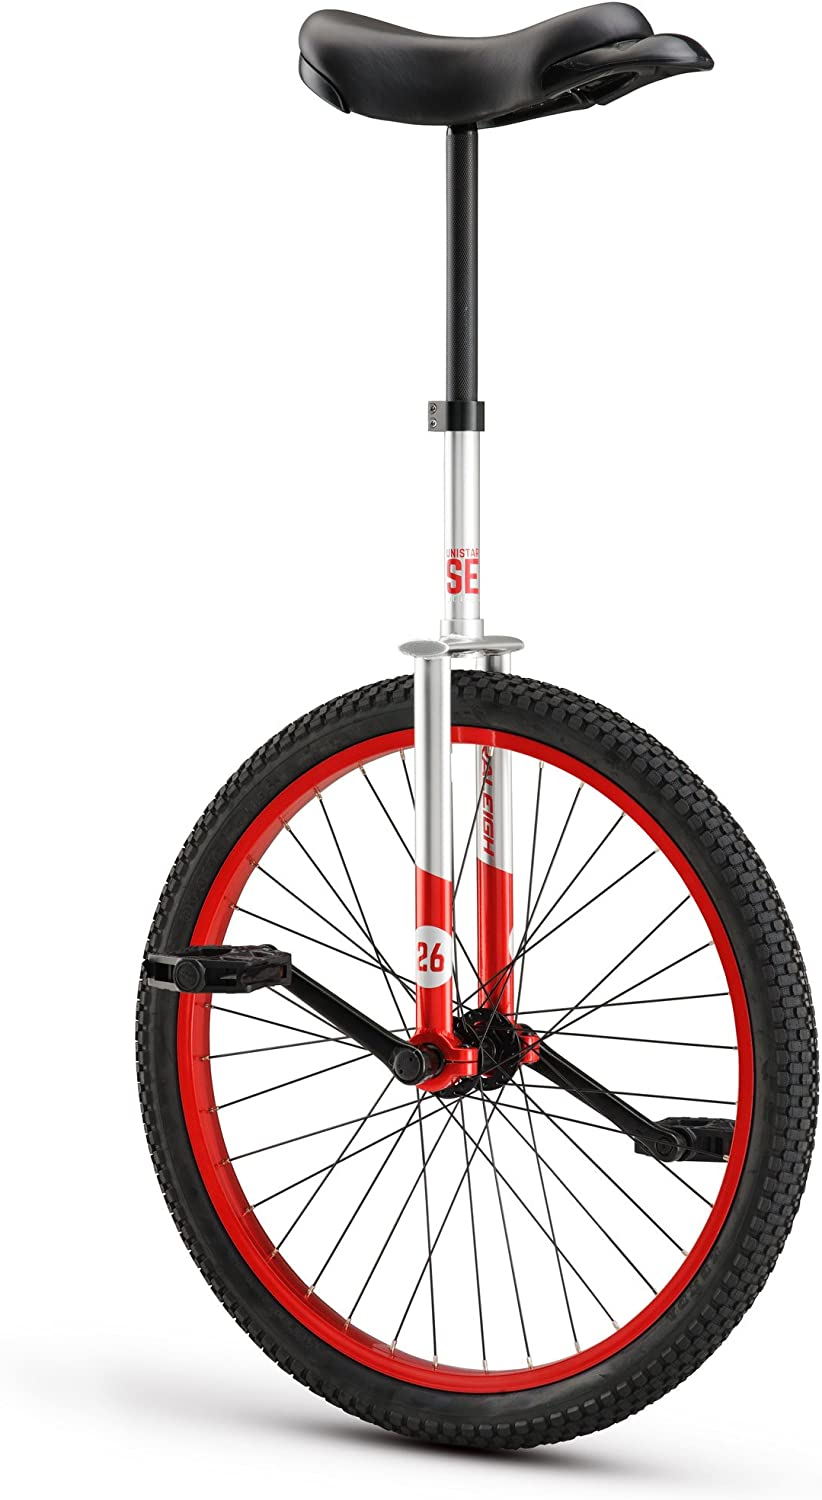 Unistar SE 26, 26inch Wheel Unicycle, Red